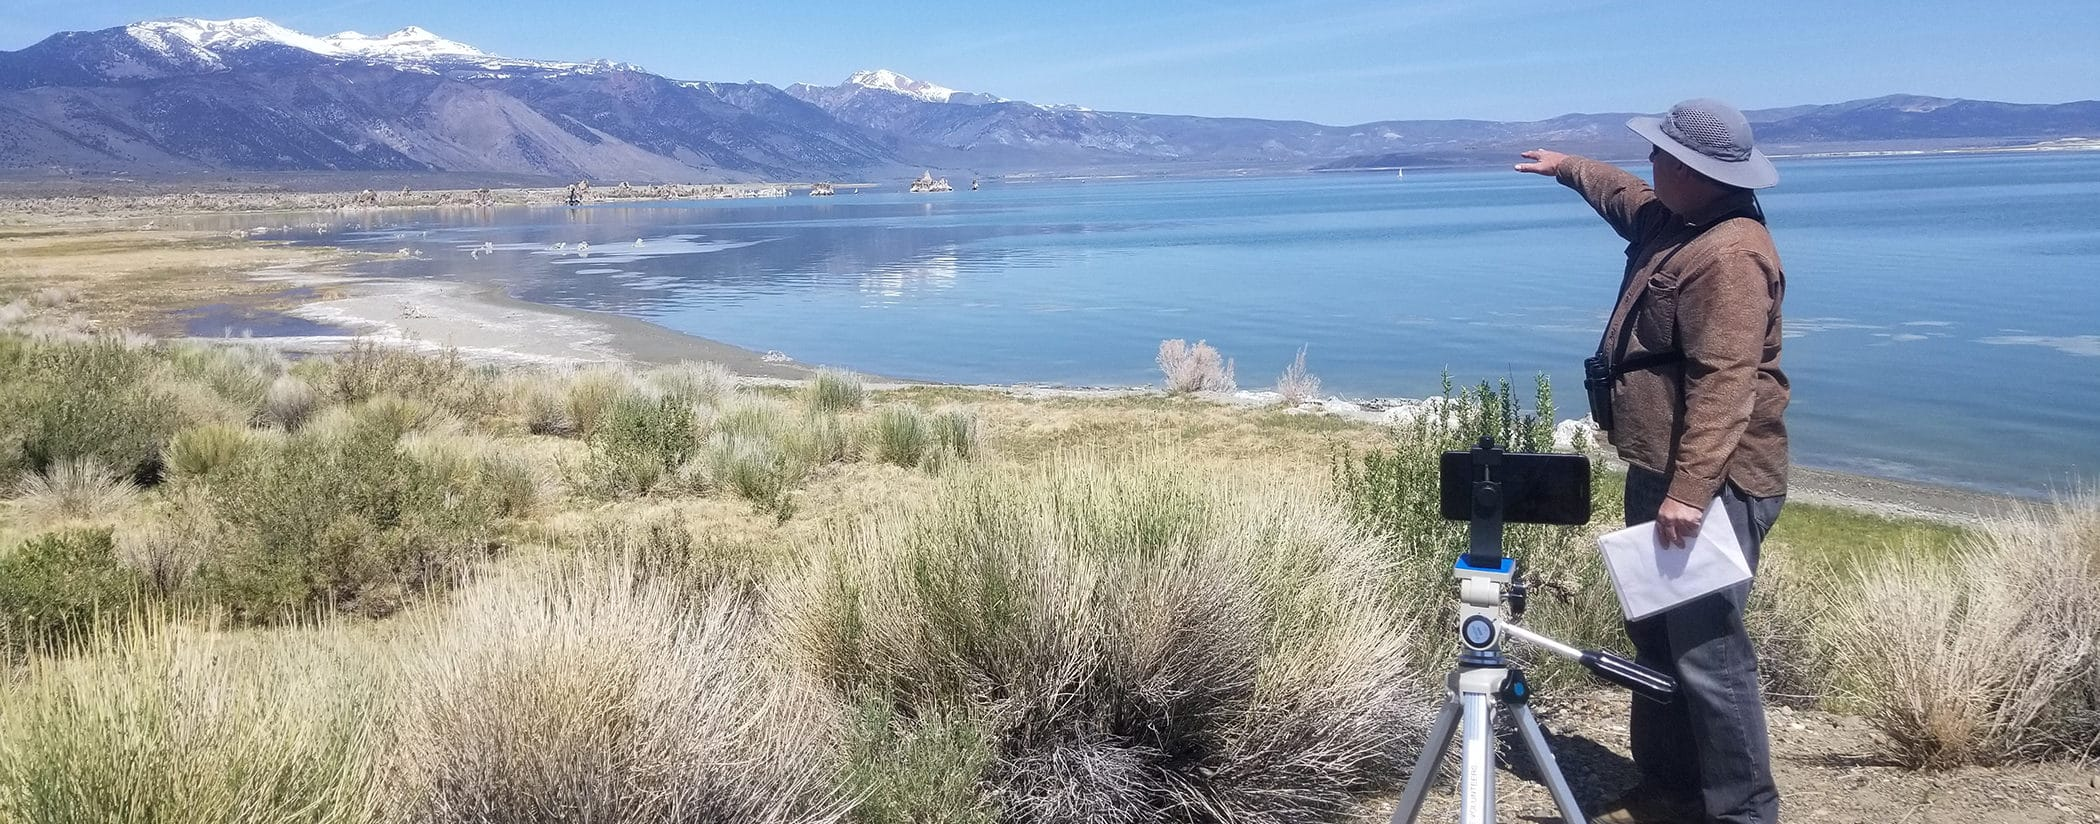 A man is outside with a hat and binoculars pointing out something in the distance while he stands in front of a cell phone mounted on a tripod so he is giving a virtual tour overlooking Mono Lake.